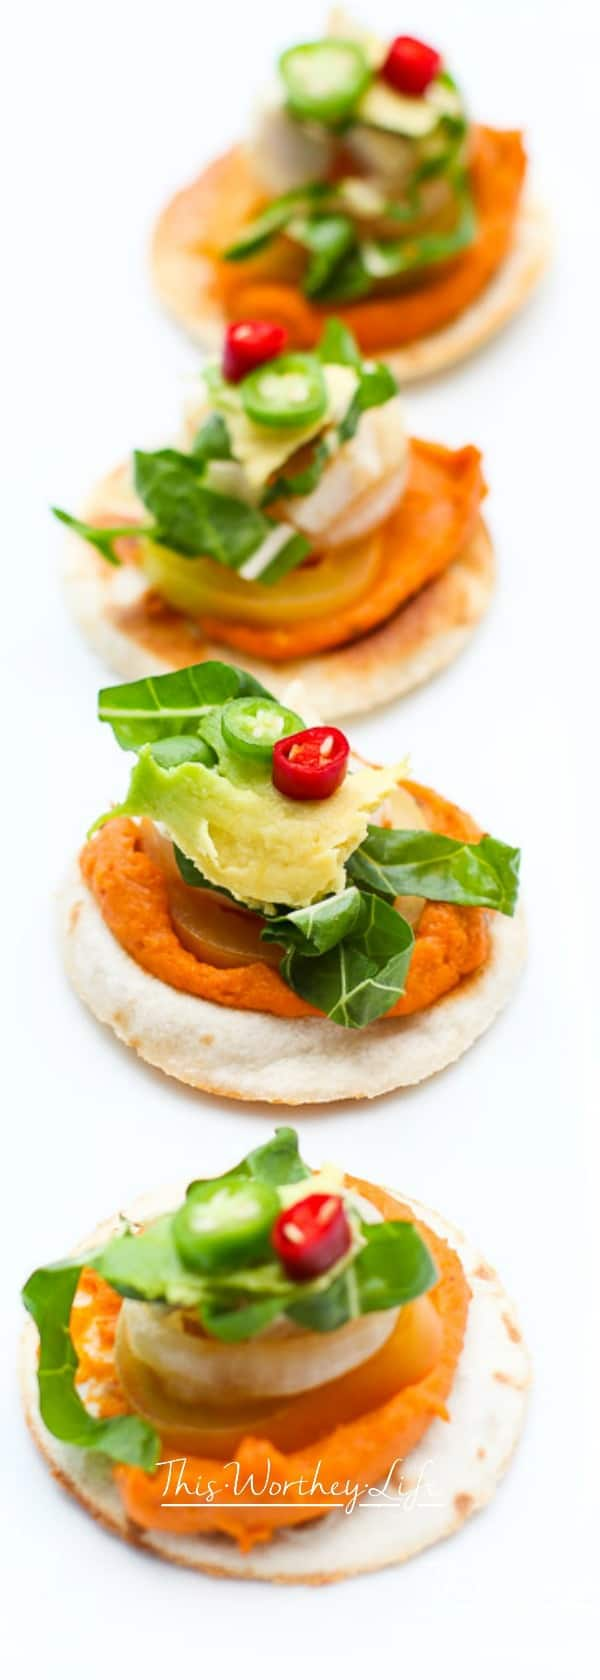 Get ready for game day with our fun appetizer using Sabra's Taco Inspired Hummus, plus chicken, fresh vegetables, laid on a flour tortilla. This easy appetizer will also be great toserve over the holidays, including Christmas appetizers, and a New Year's Eve party. Plus, when you're getting ready for the Superbowl, this chicken and hummus appetizer will be a crowd favorite!